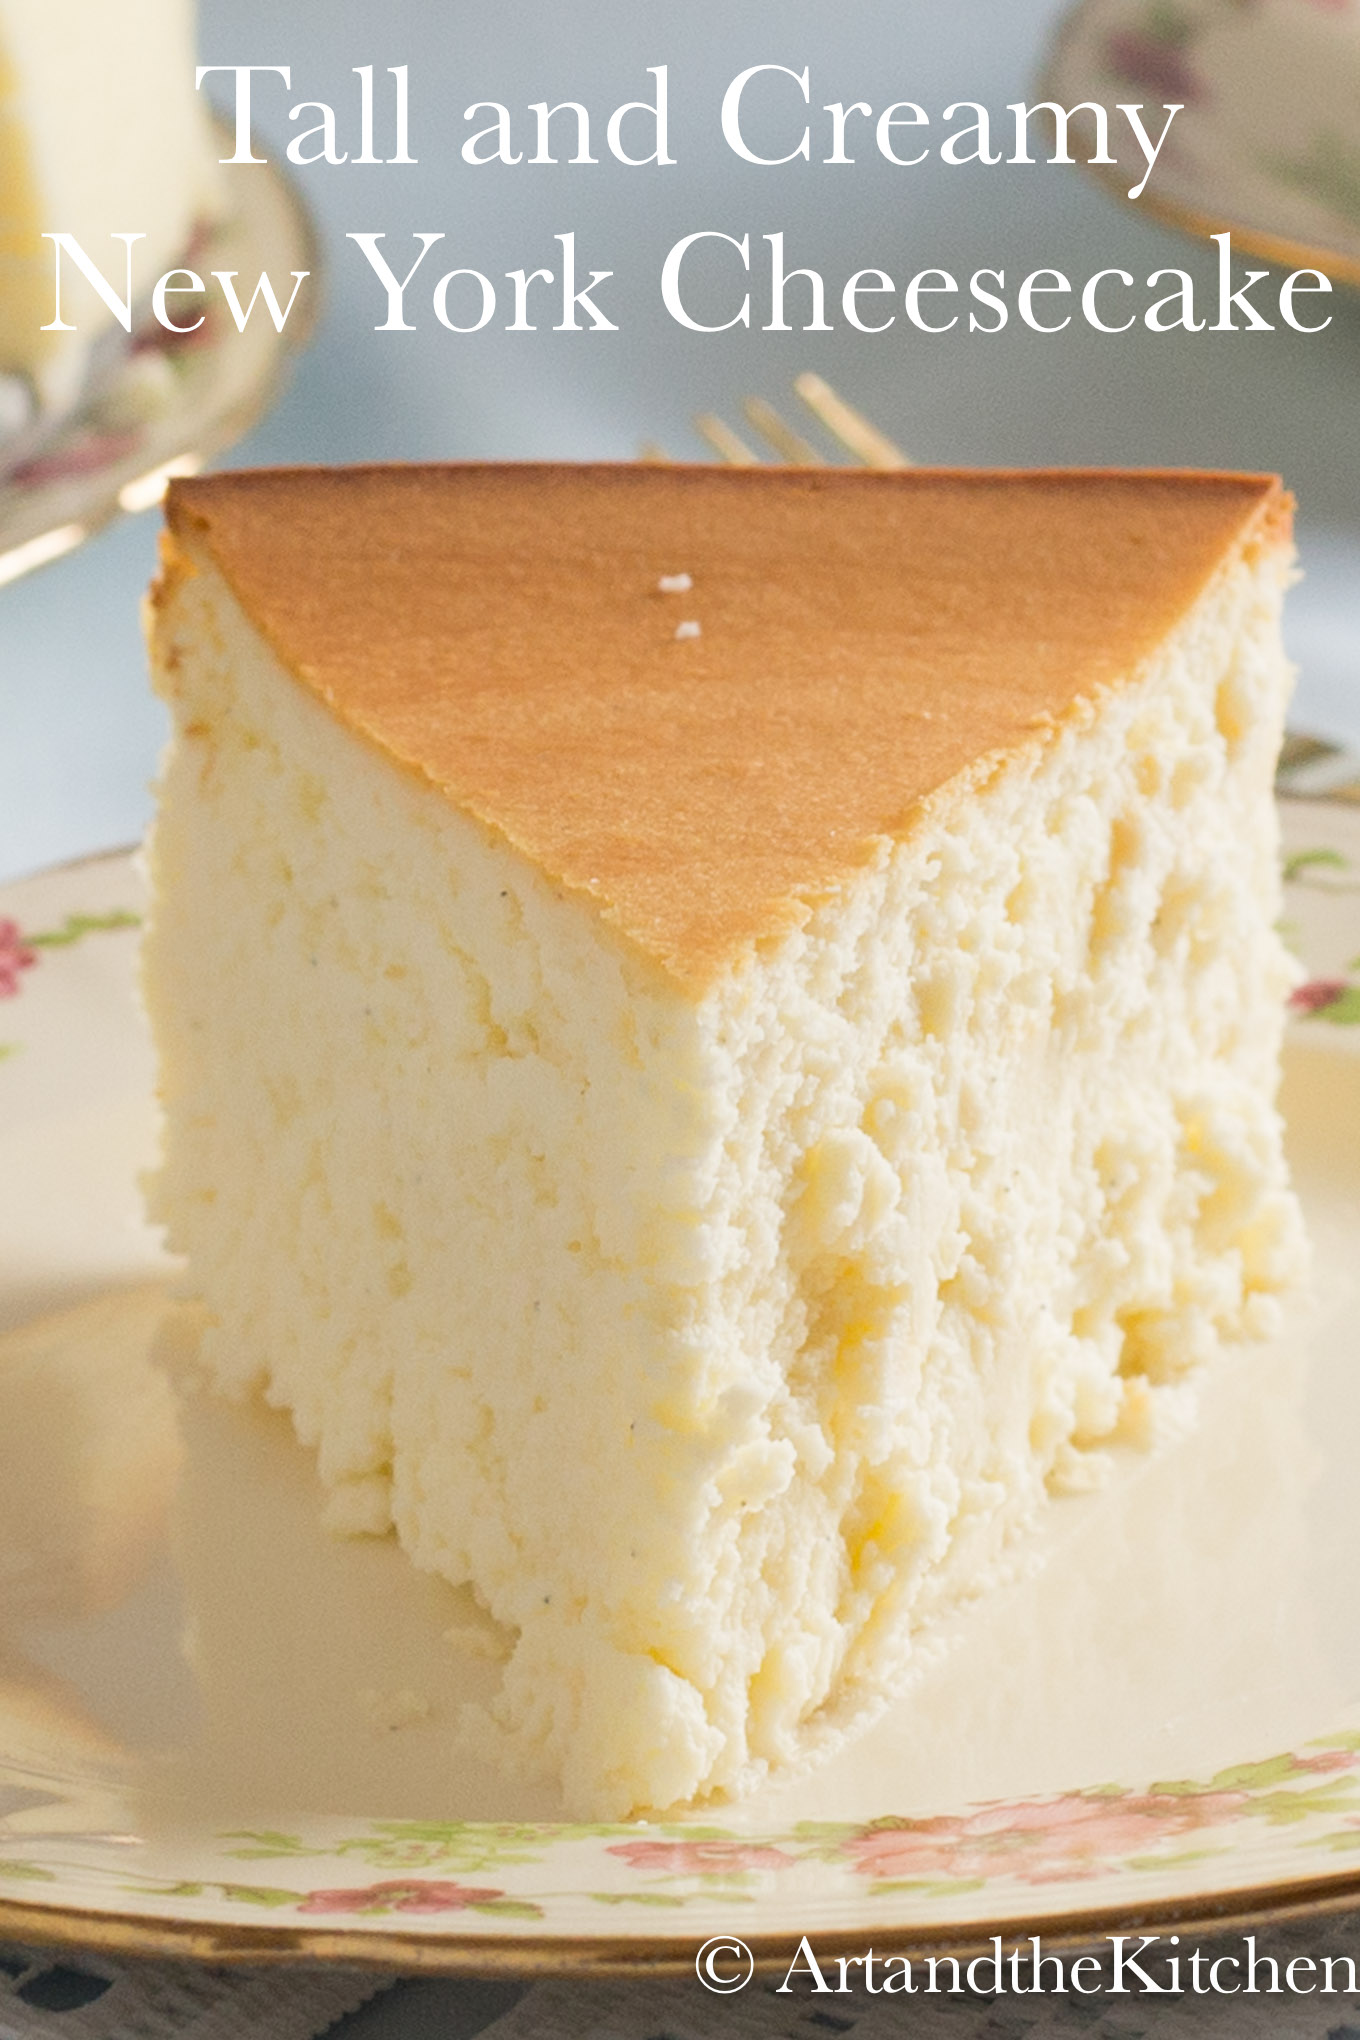 Tall and Creamy New York Cheesecake is an exceptional cheesecake recipe. The best cheesecake I've ever had!